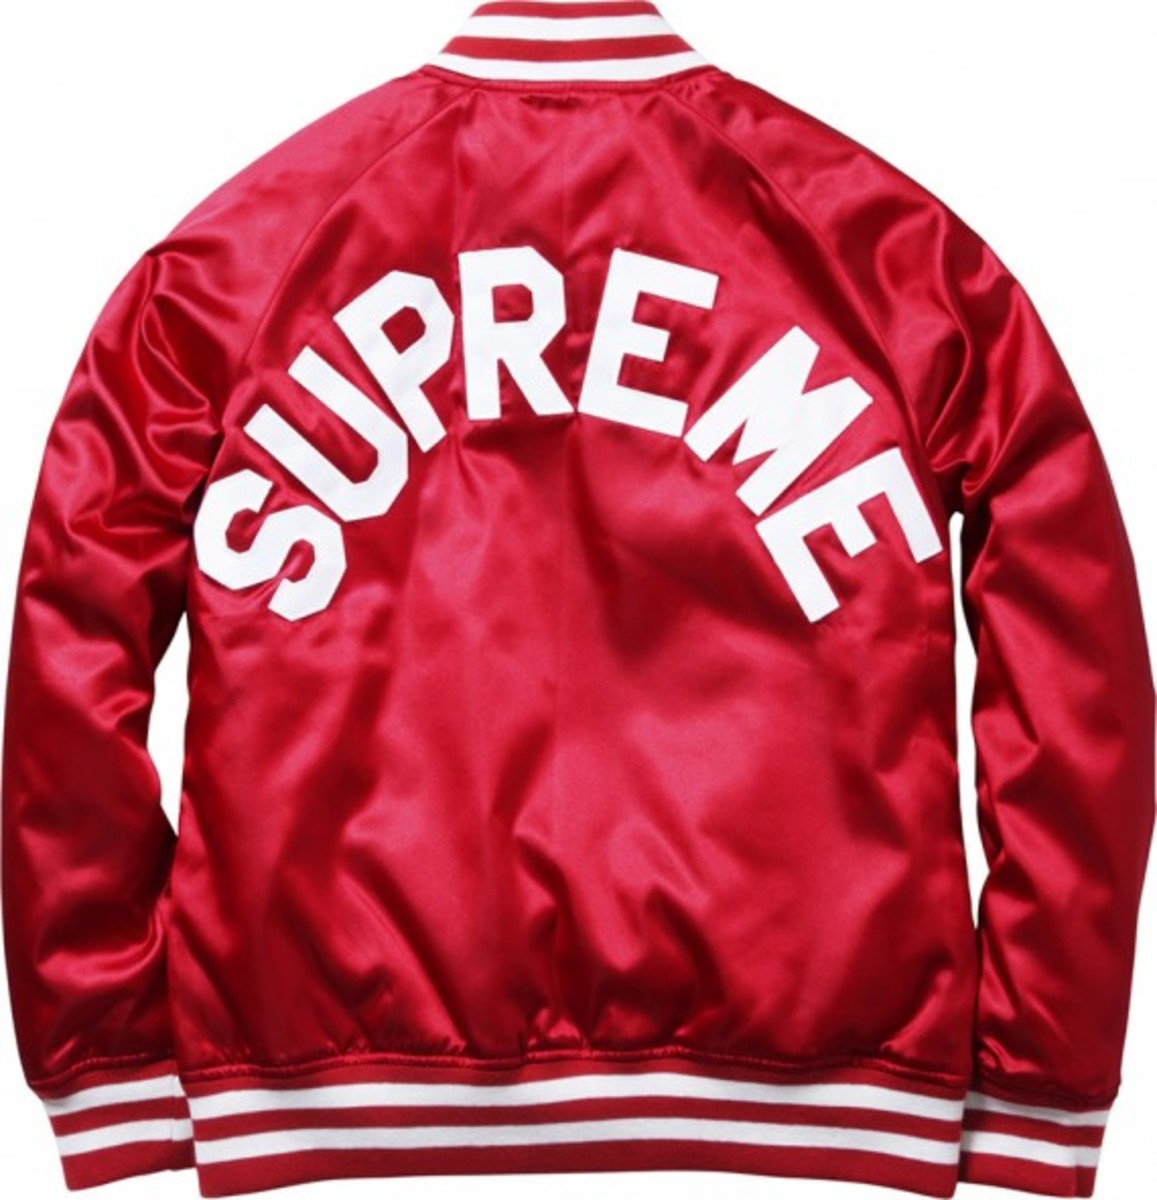 supreme-spring-summer-2013-outerwear-collection-06